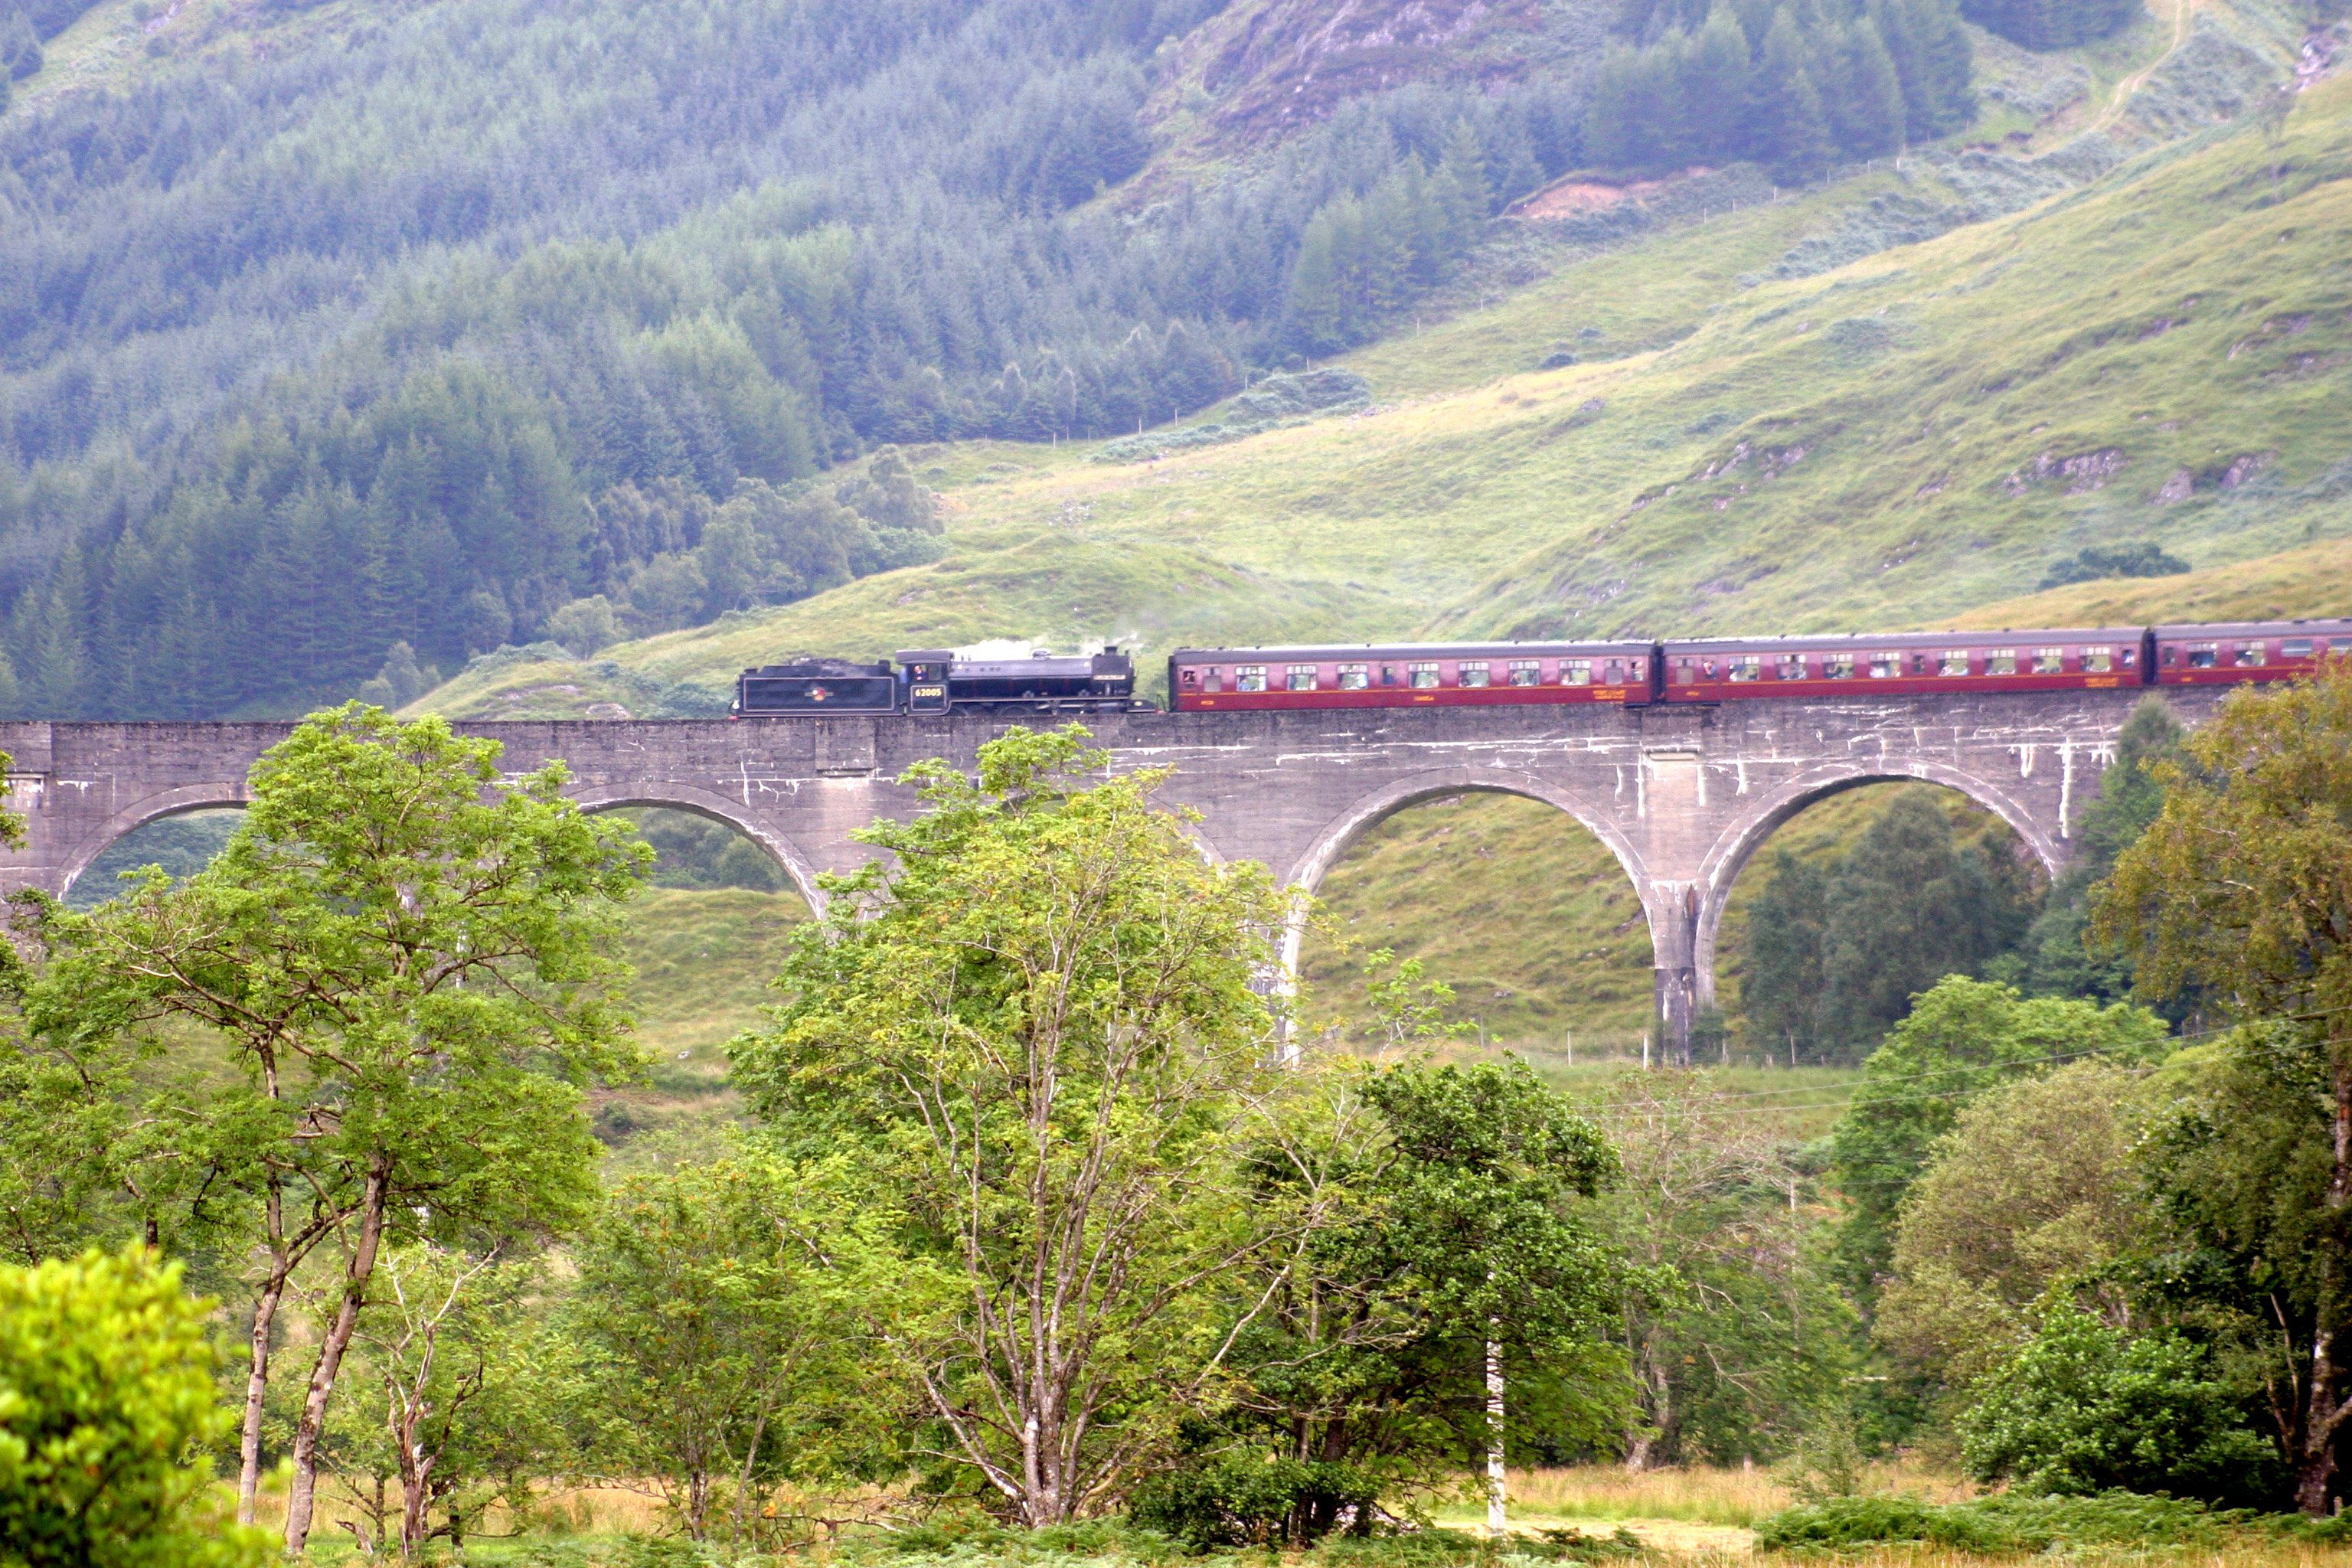 Train across Glenfinnan Viaduct